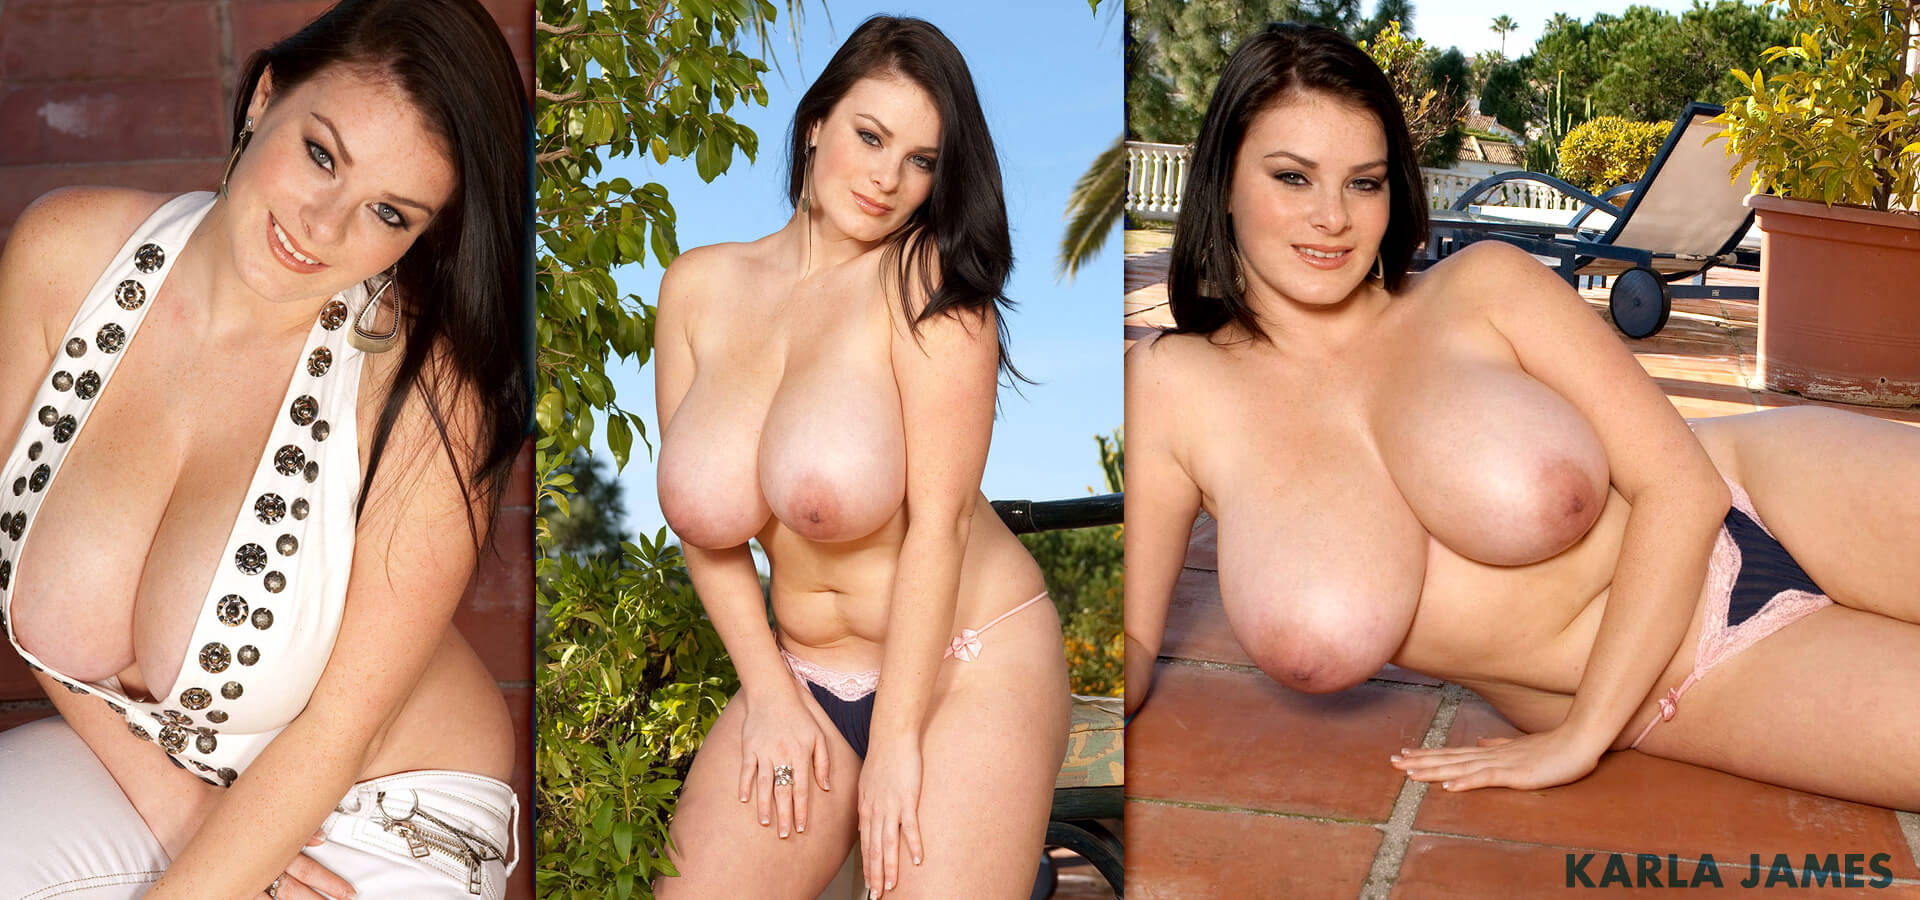 Karla James babes - Join Now!